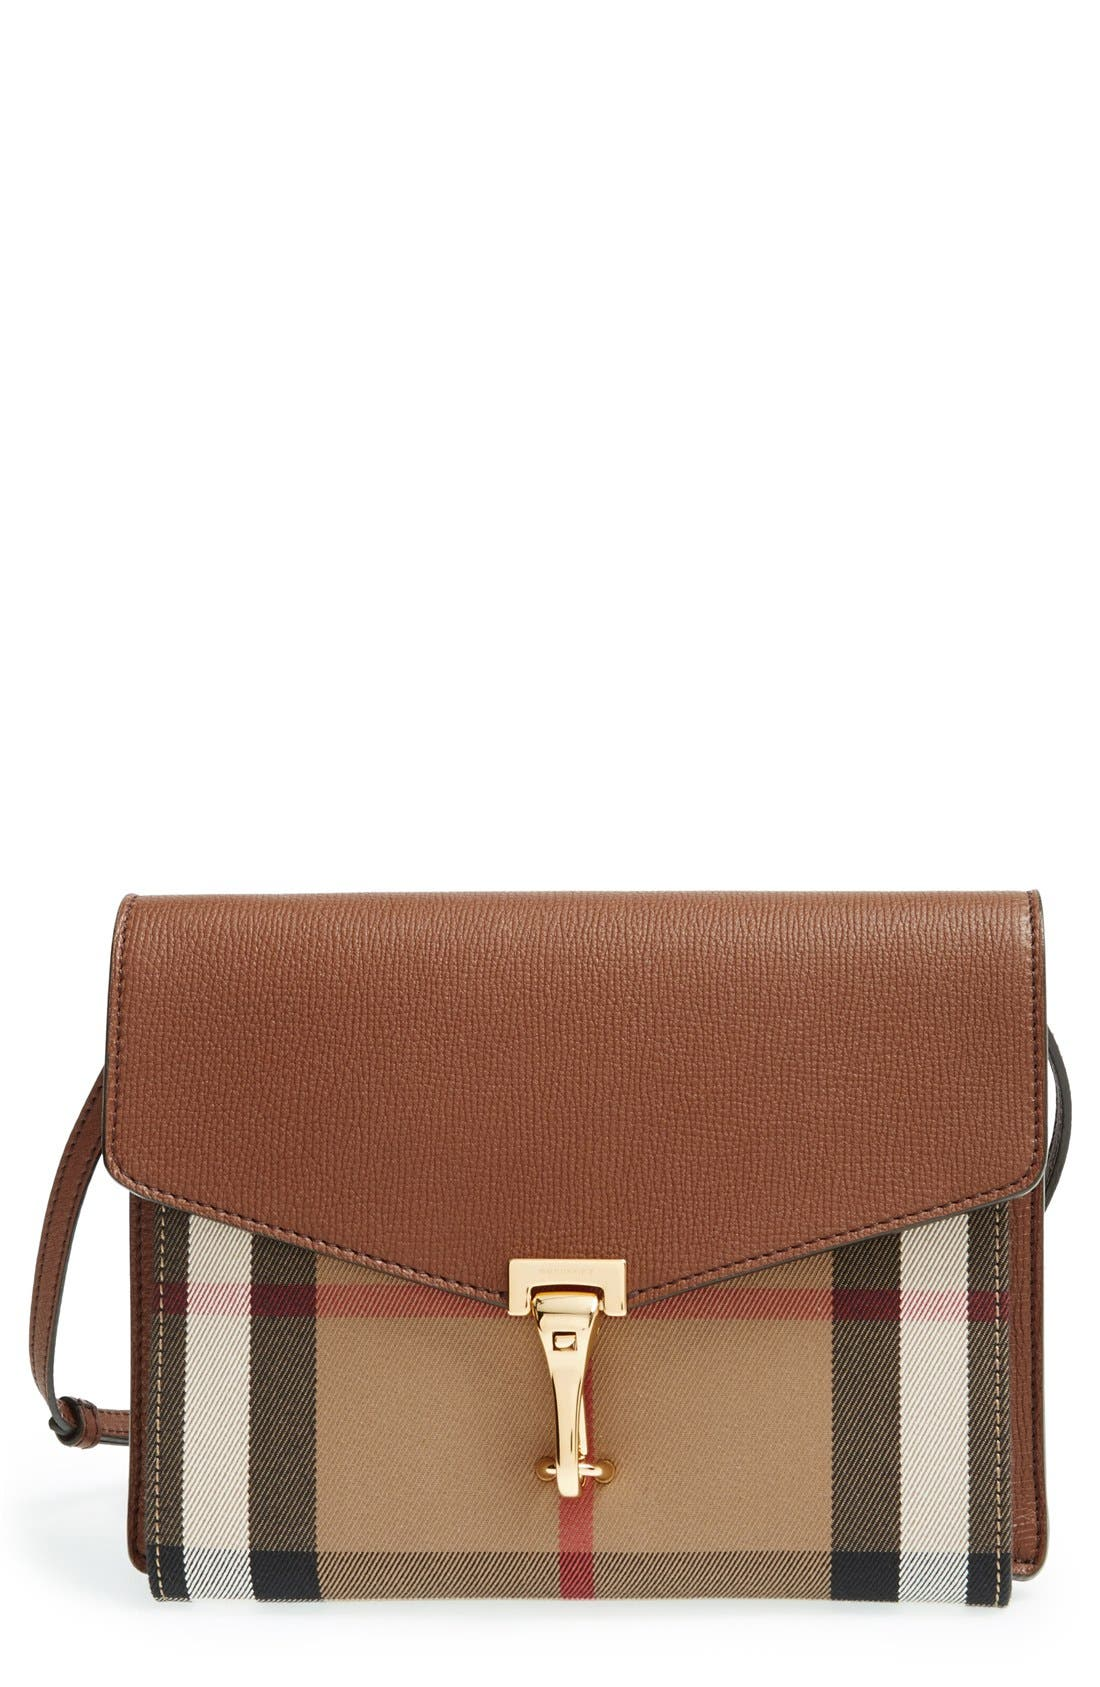 Main Image - Burberry 'Small Macken' Check Crossbody Bag